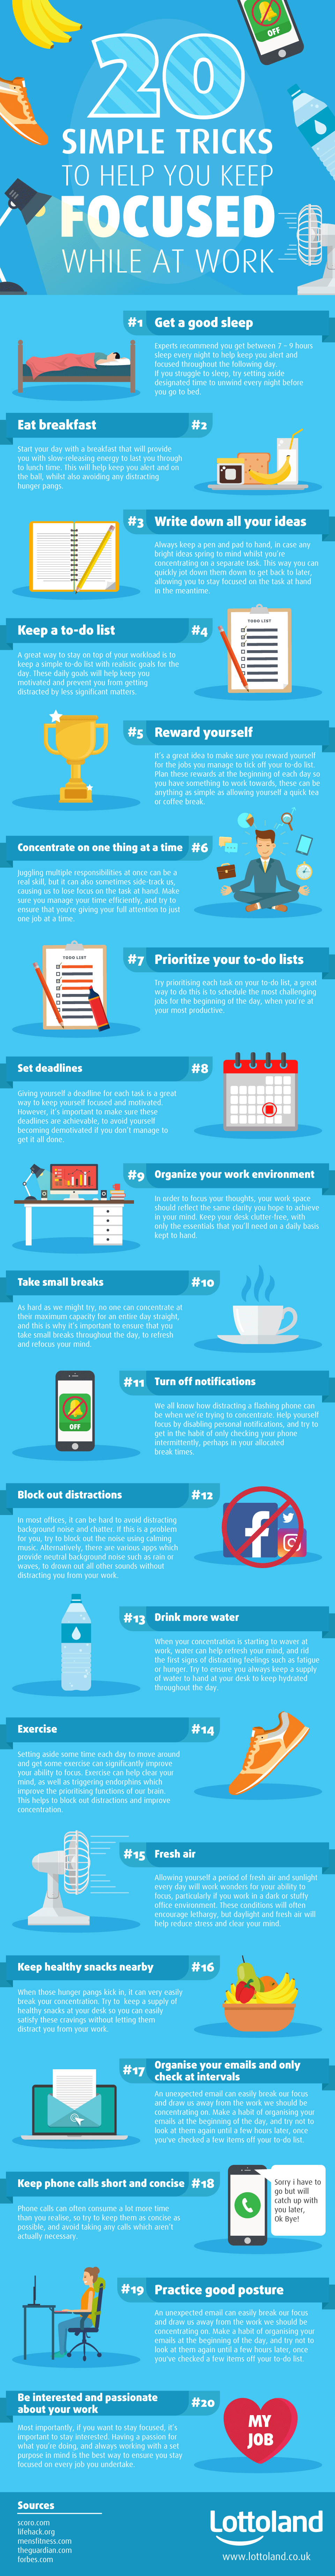 20 Simple Tricks to Help Keep You Focused at Work Tips For Keeping Focused